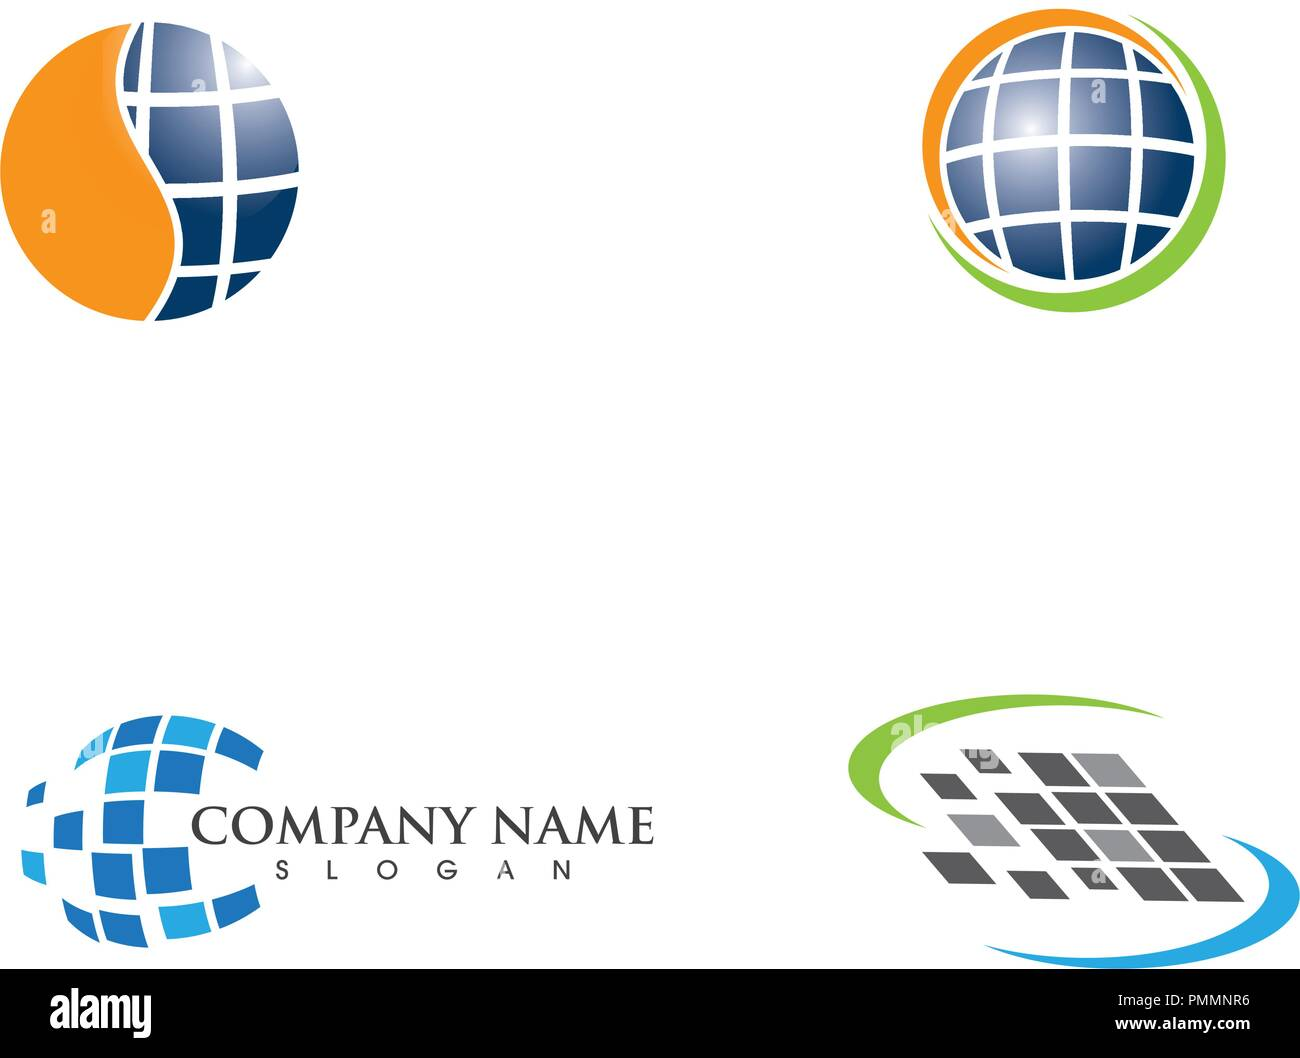 Solar logo energy icon vector design - Stock Image